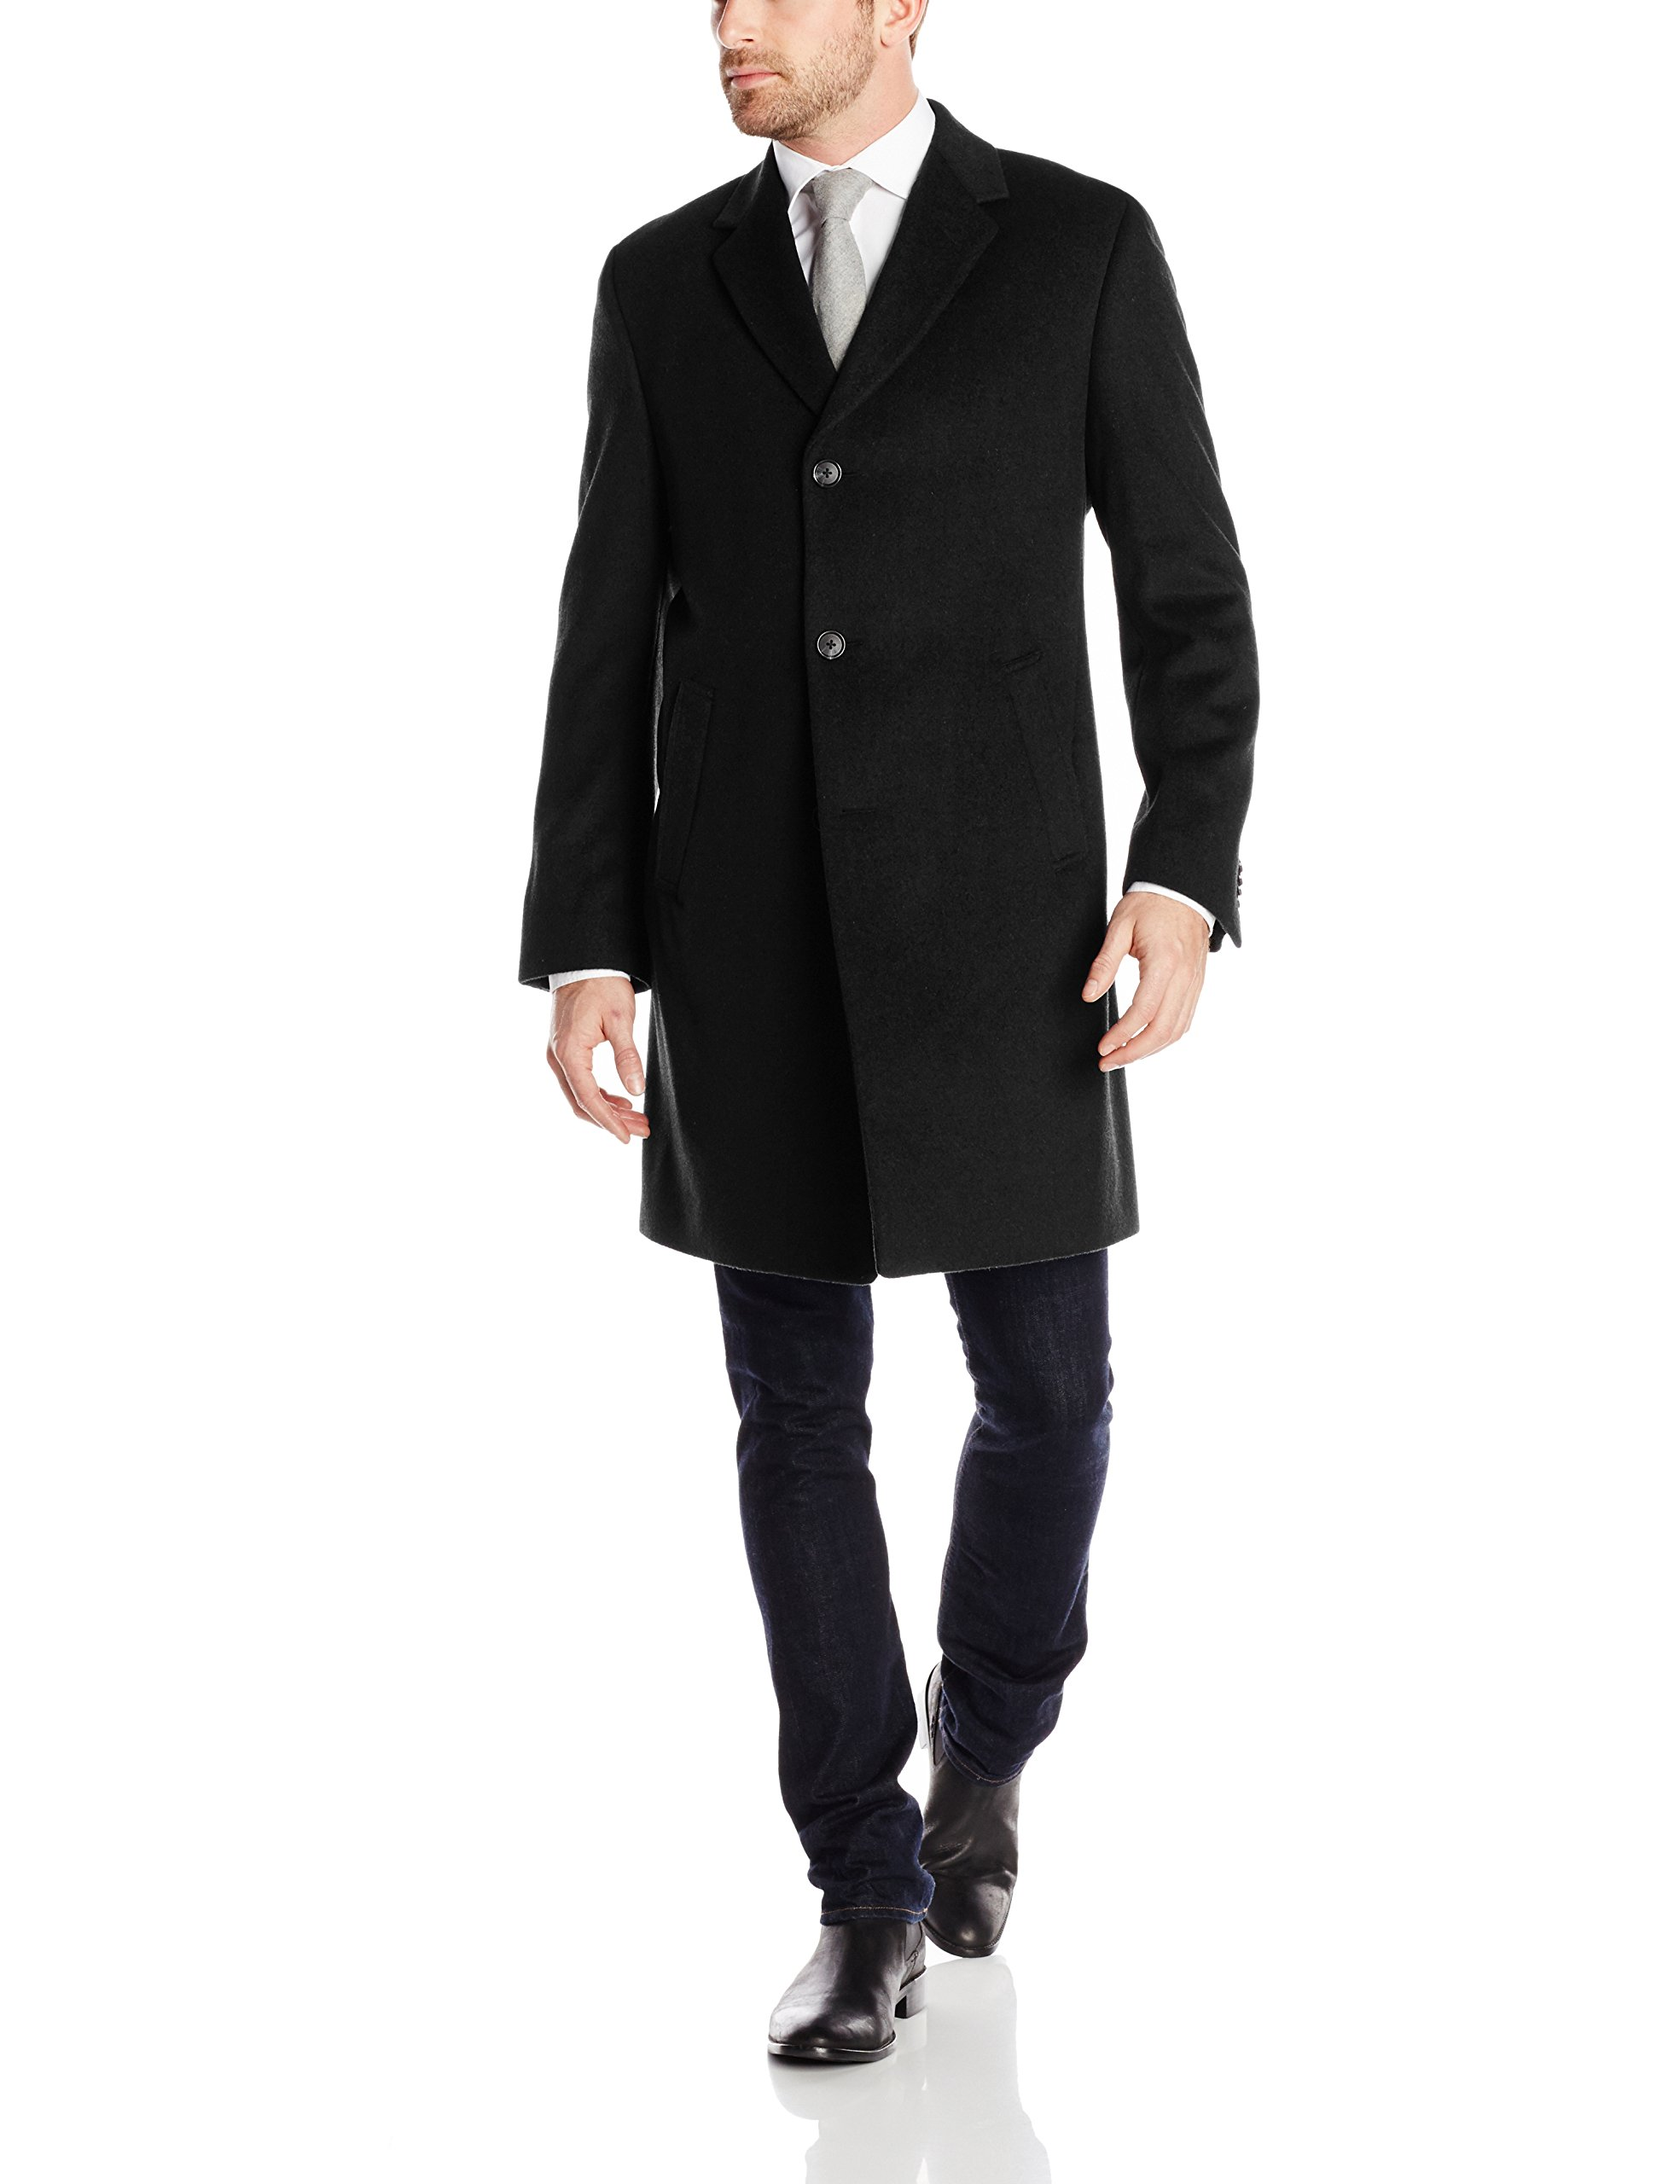 Kenneth Cole REACTION Men's Raburn Wool Top Coat, Black, 44 Regular by Kenneth Cole REACTION